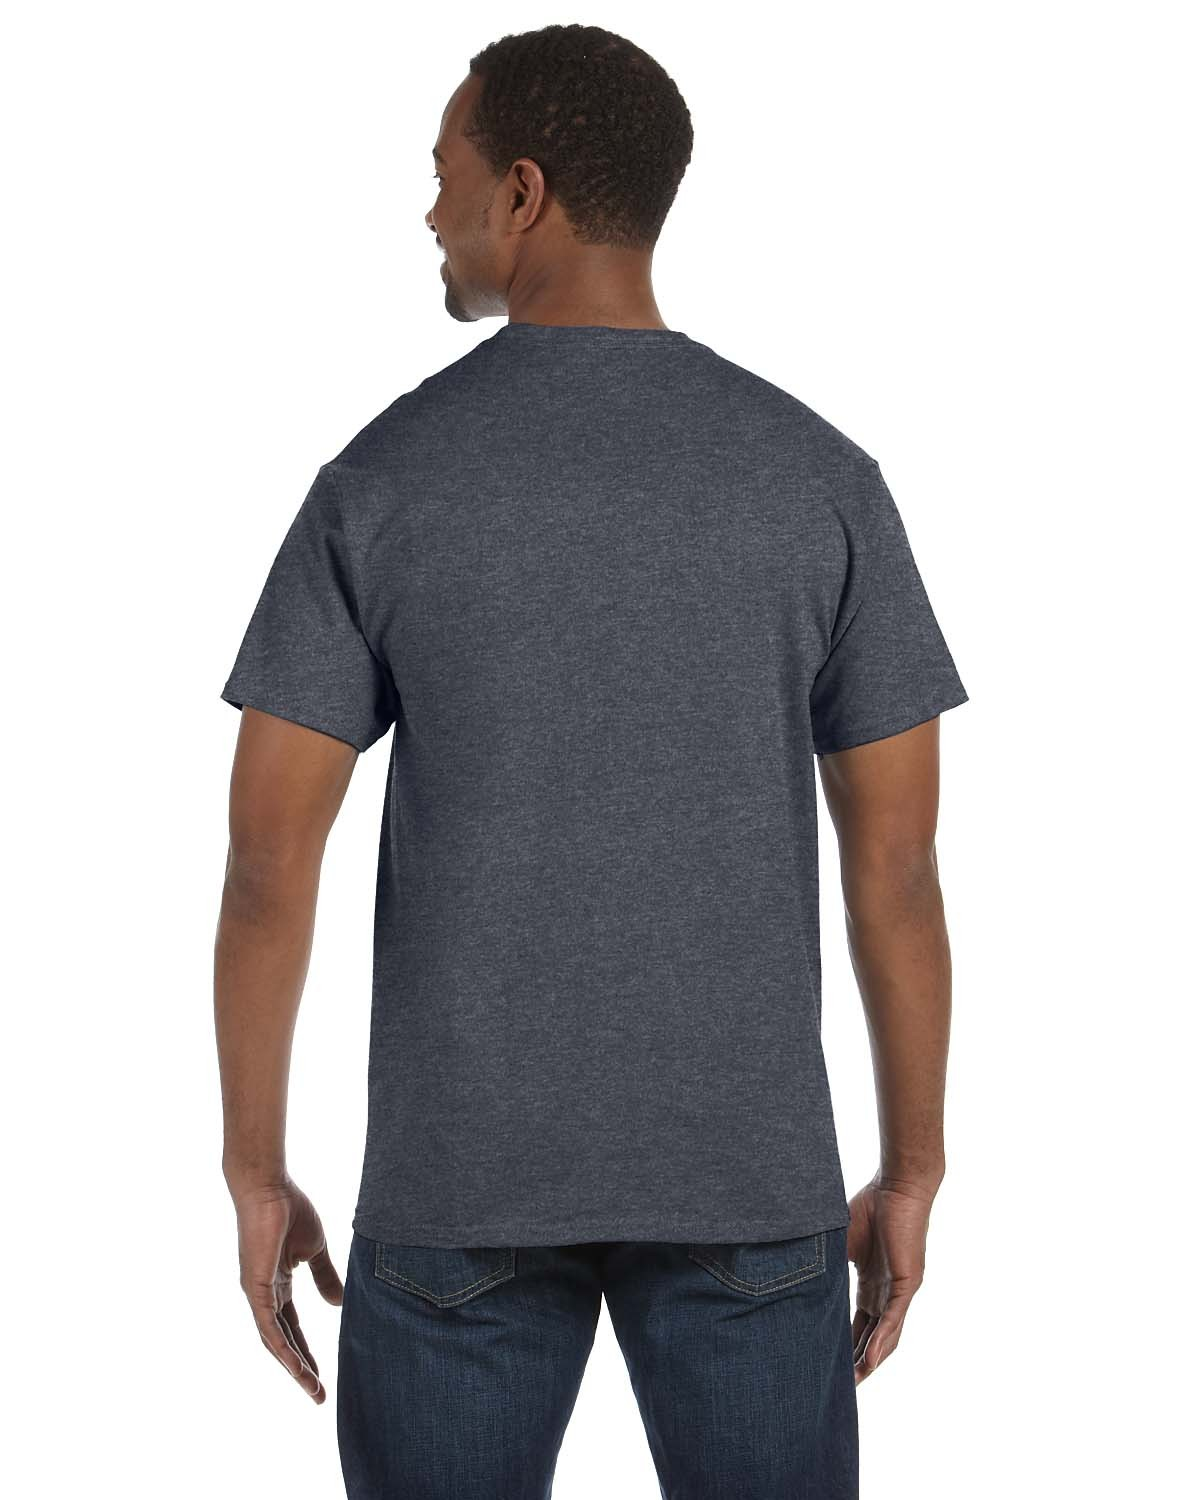 5250T Hanes CHARCOAL HEATHER